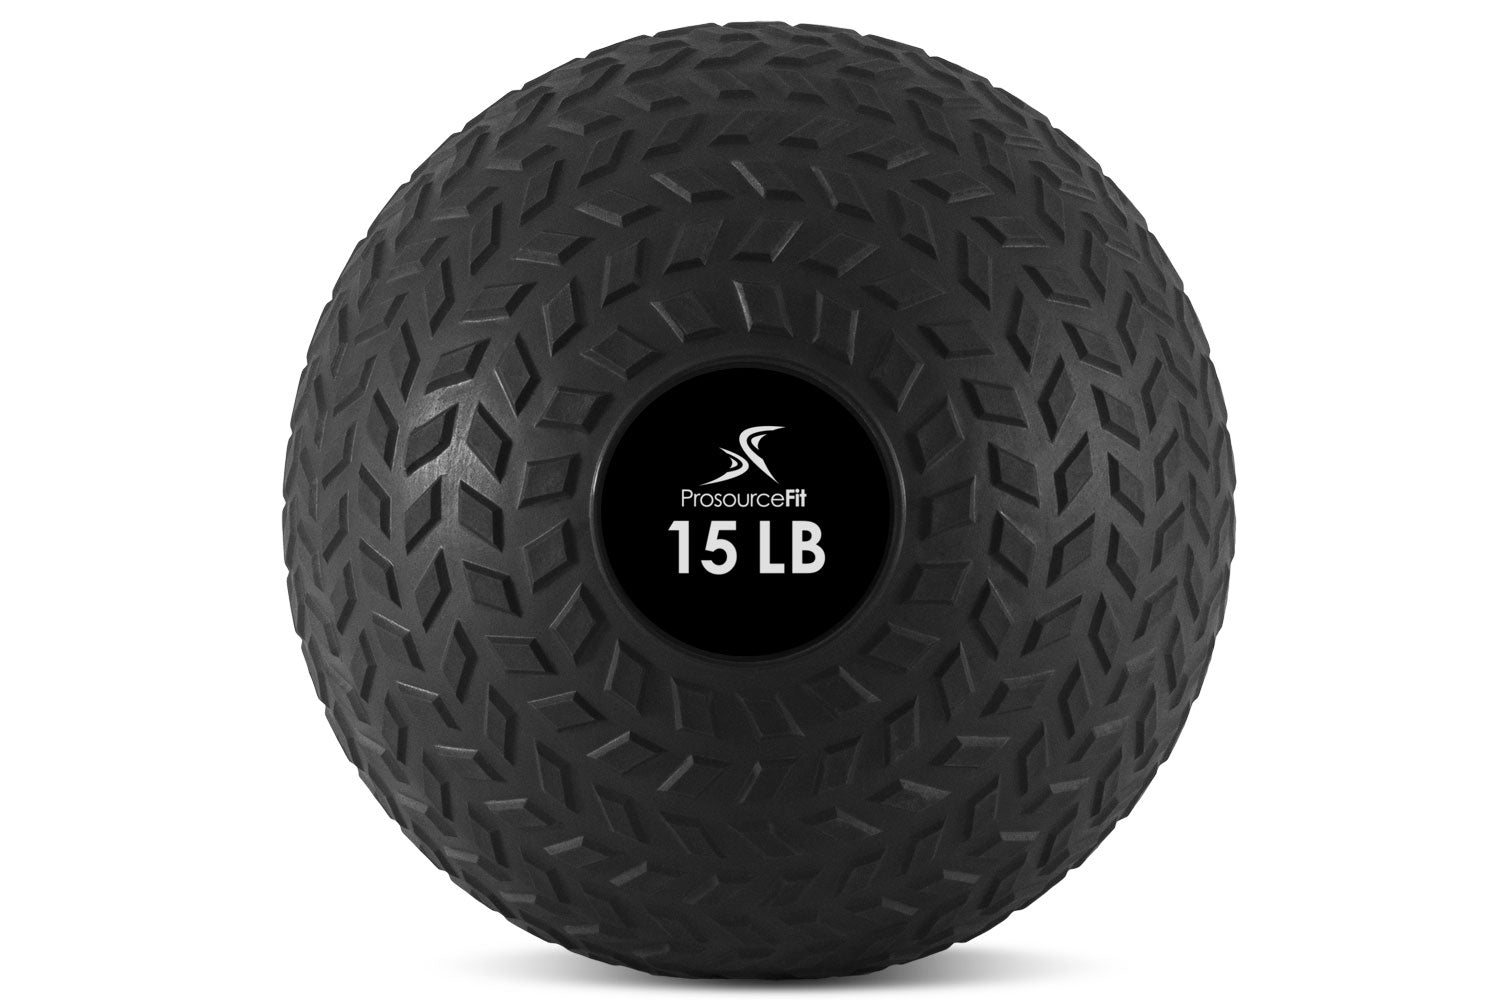 15 lb Tread Slam Ball